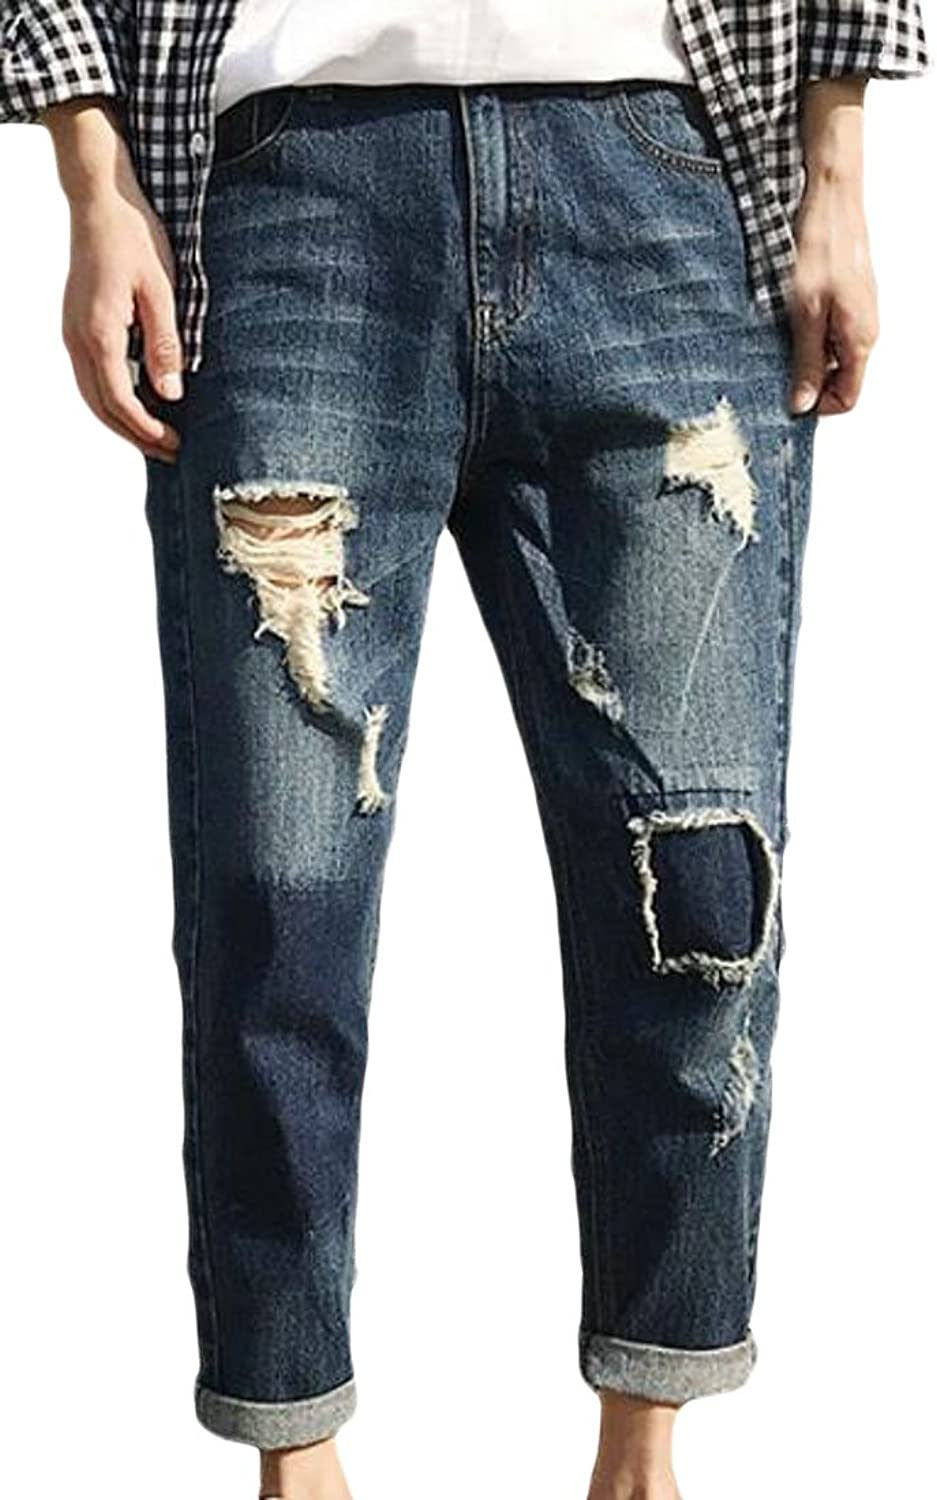 e1c165d3e Nanquan-men clothes NQ Men's Distressed Broken Holes Washed Jeans ...